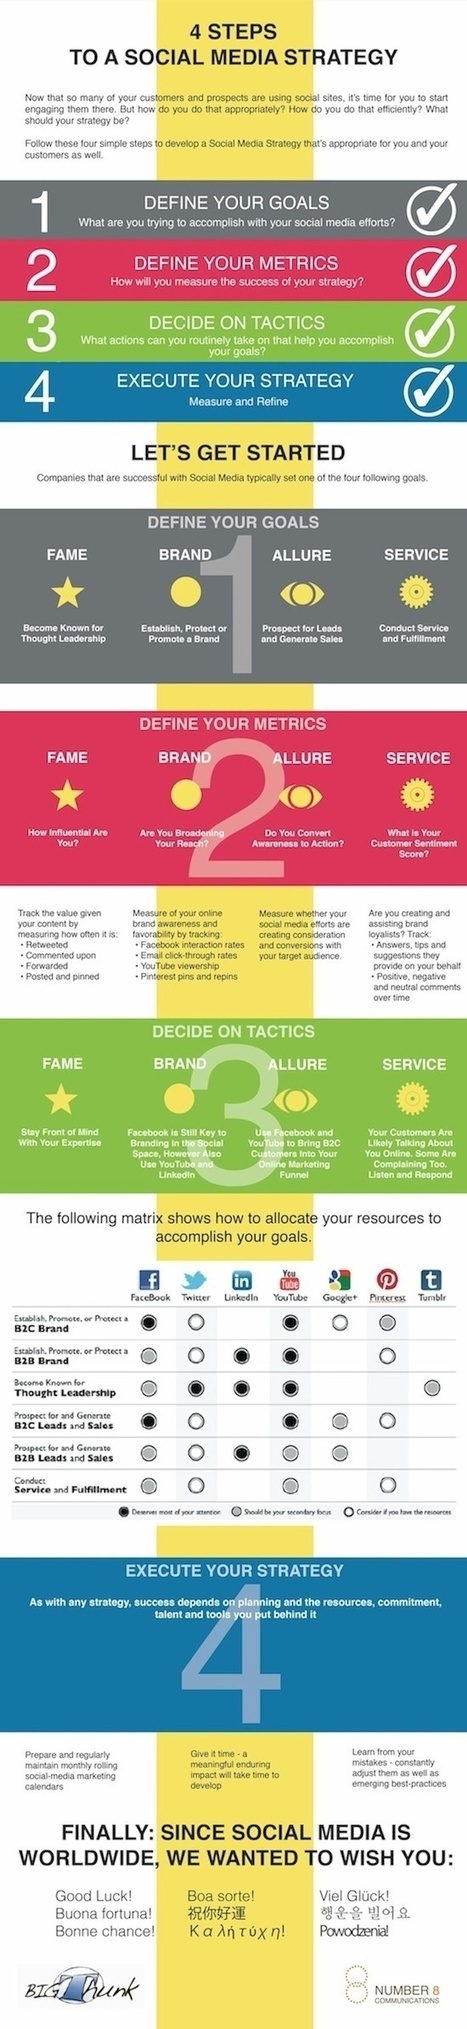 4 steps to a social media strategy | Facebook best practice | Scoop.it